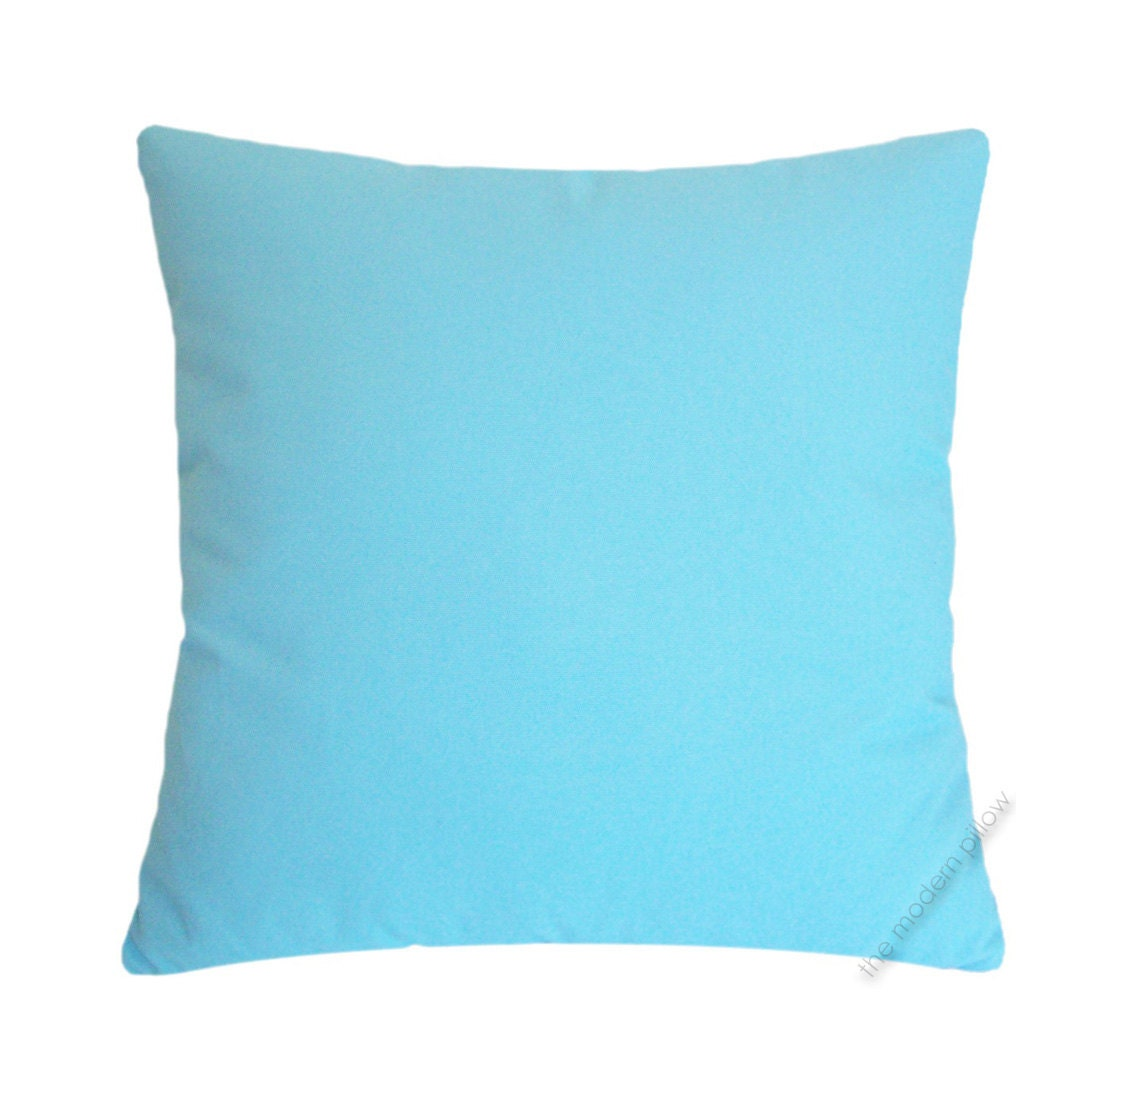 Sky Blue Decorative Pillows : Sky Blue Solid Decorative Throw Pillow Cover / Pillow Case